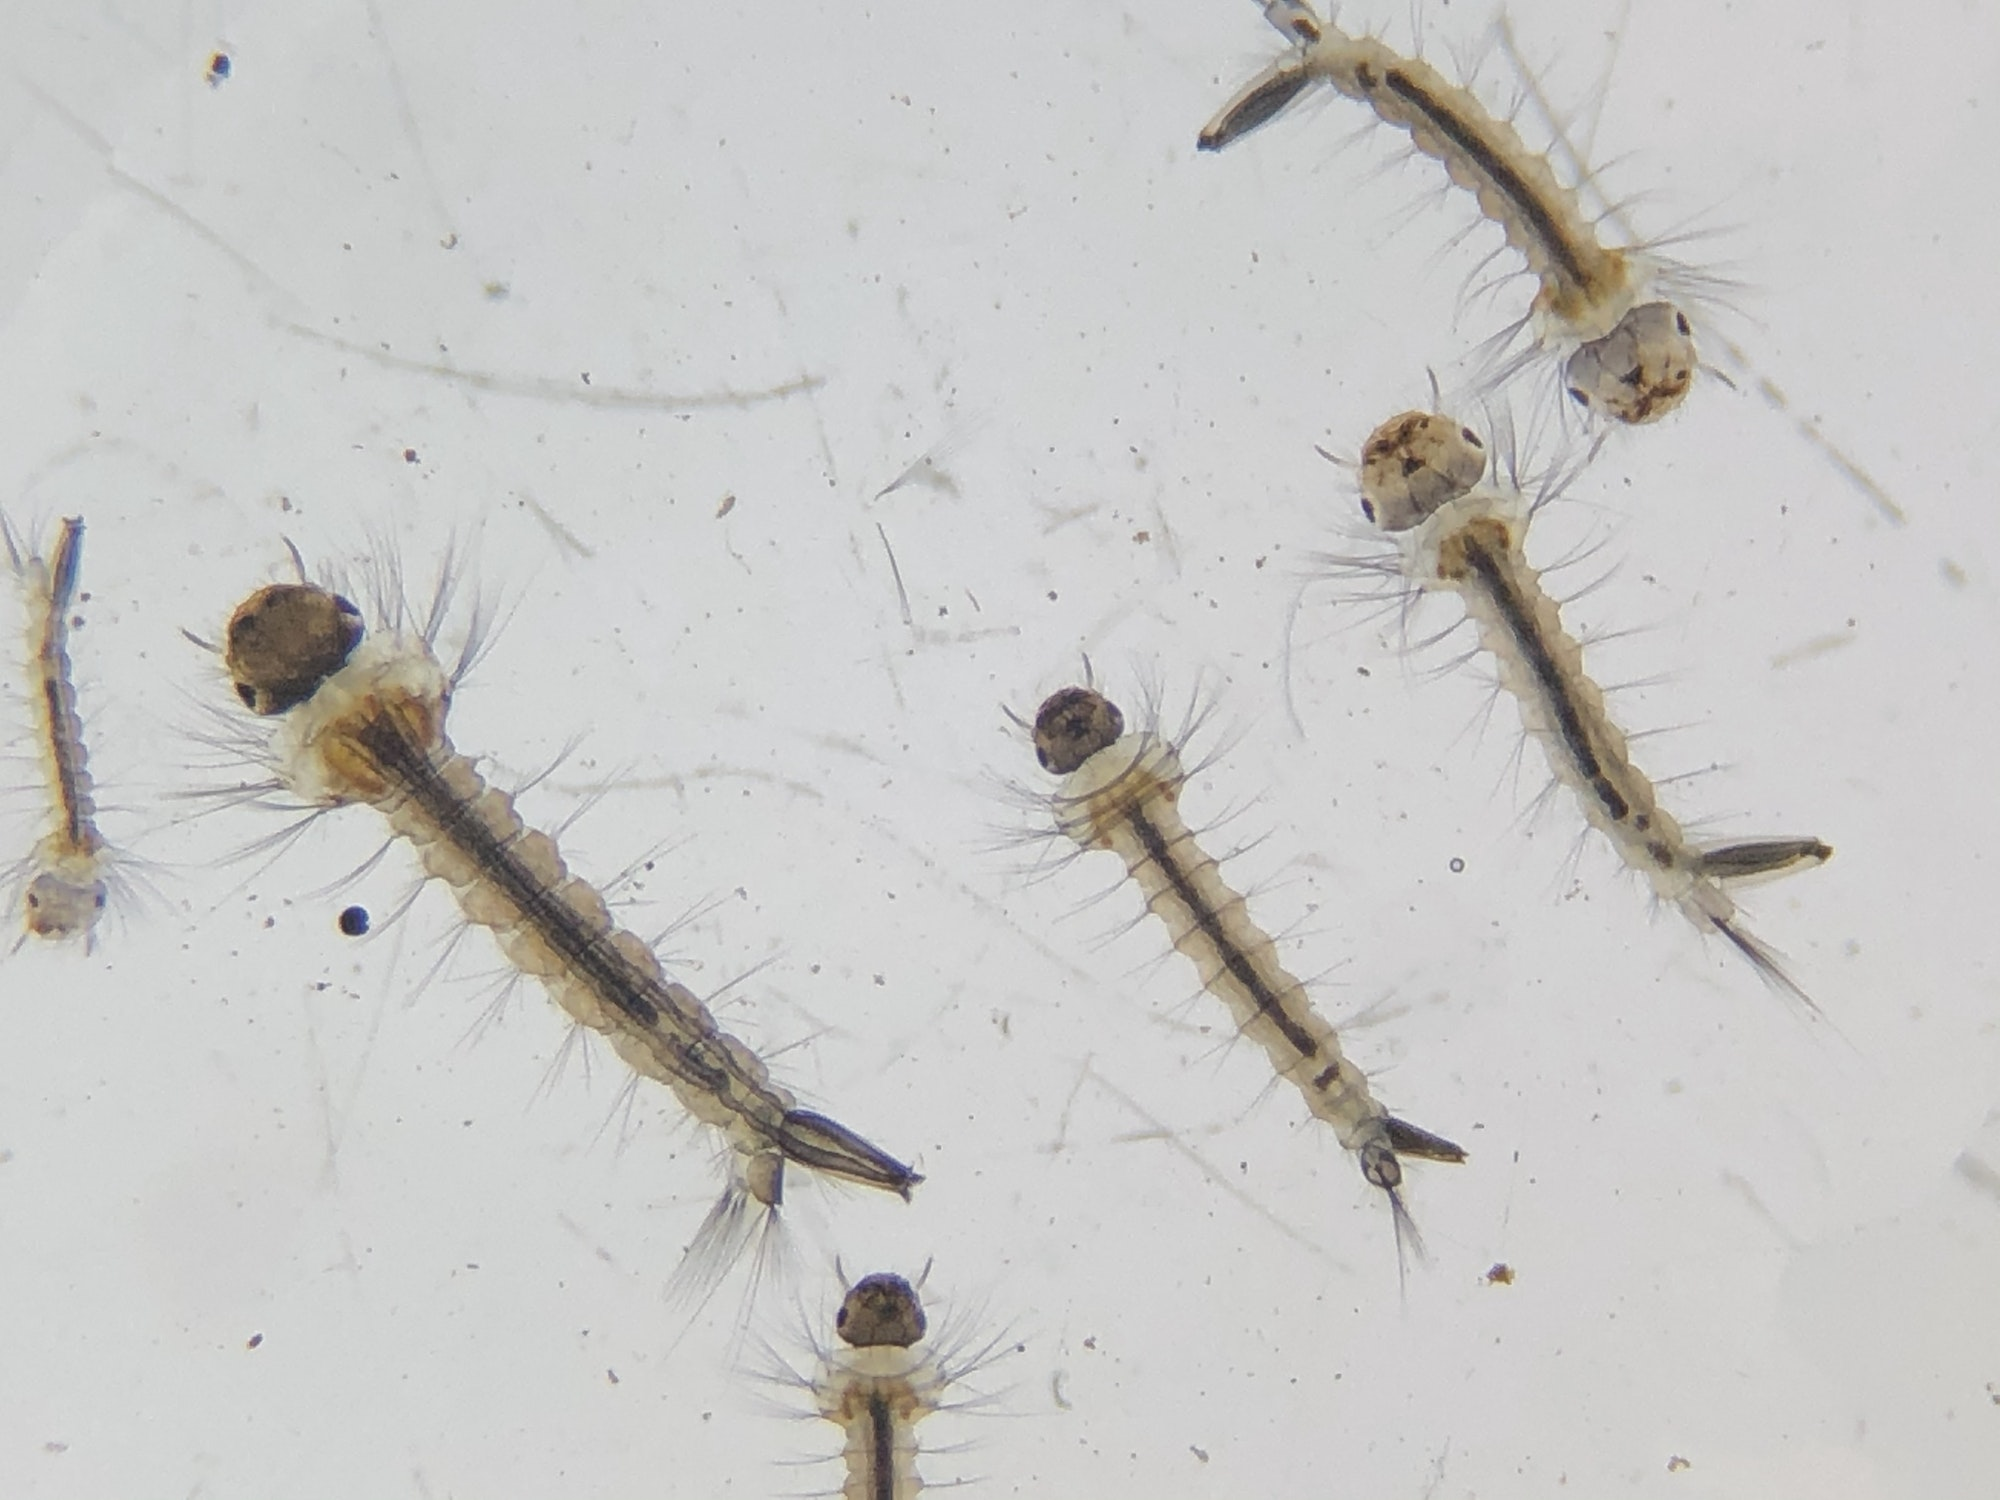 Six mosquito larvae viewed under magnification. The larvae each have a oval-shaped dark head, a long thin lighter colored brown body, and appear to be covered with small thin hairs.